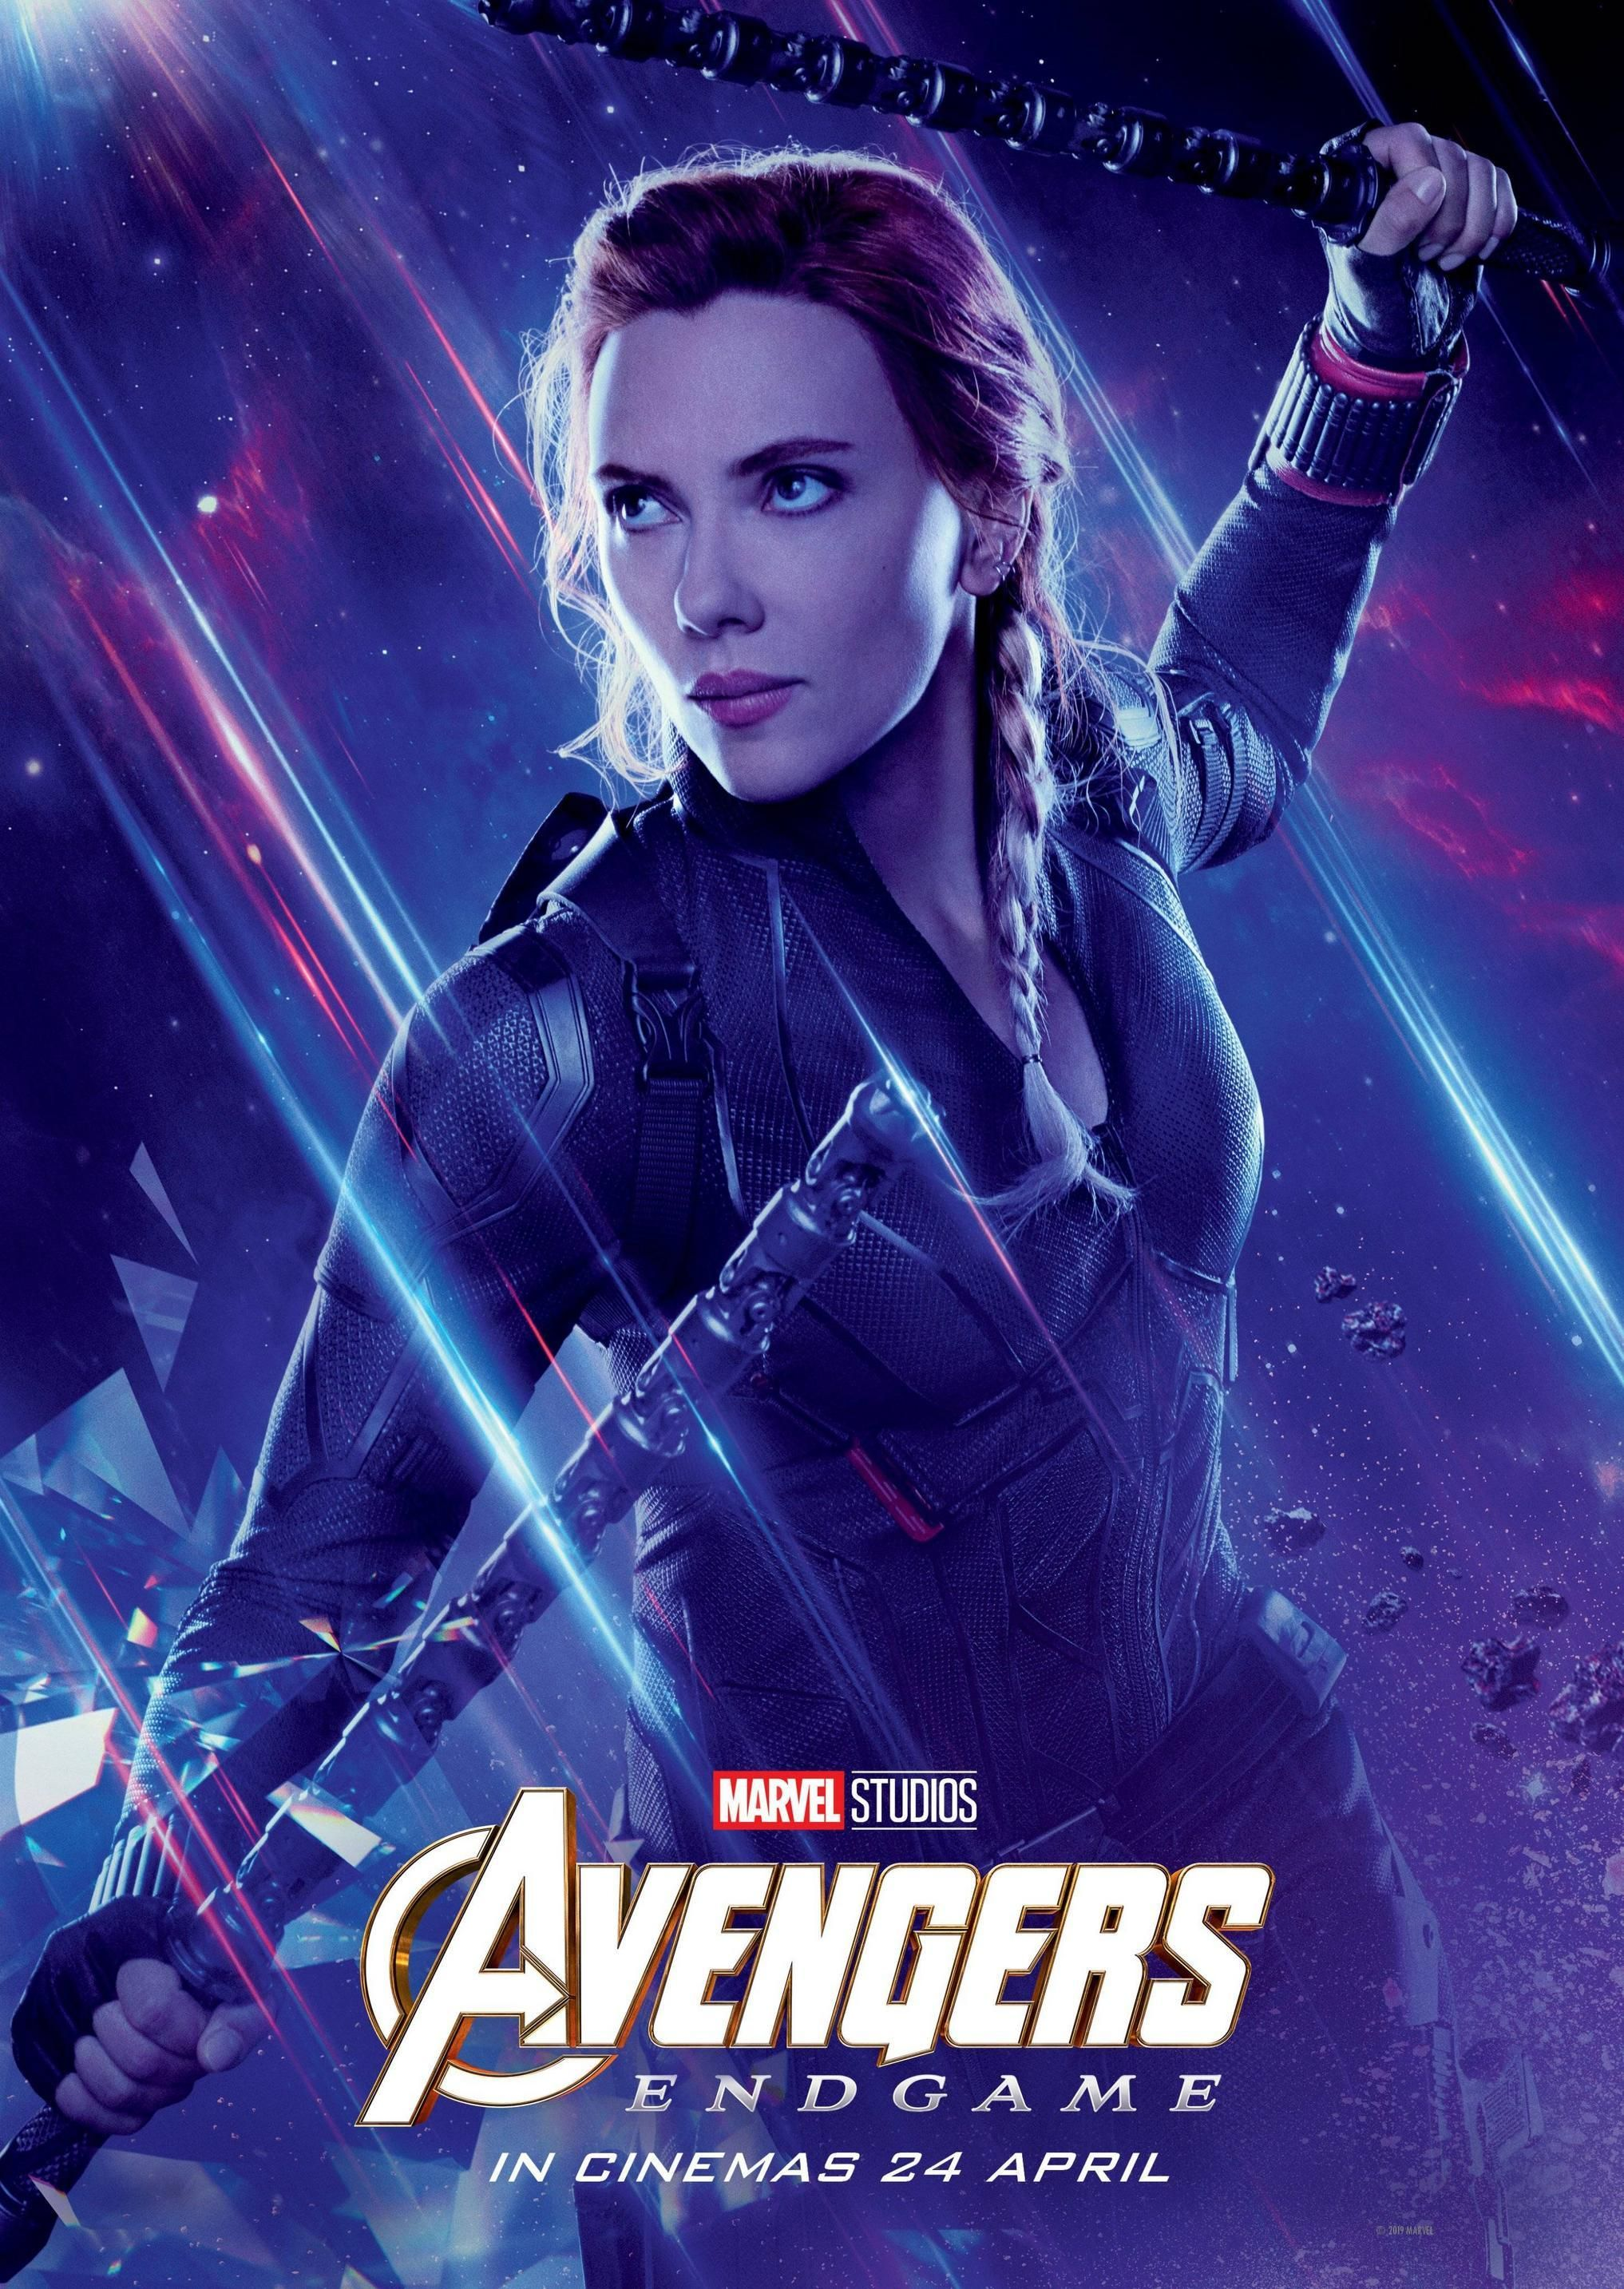 Avengers Endgame International Character Posters Revealed The